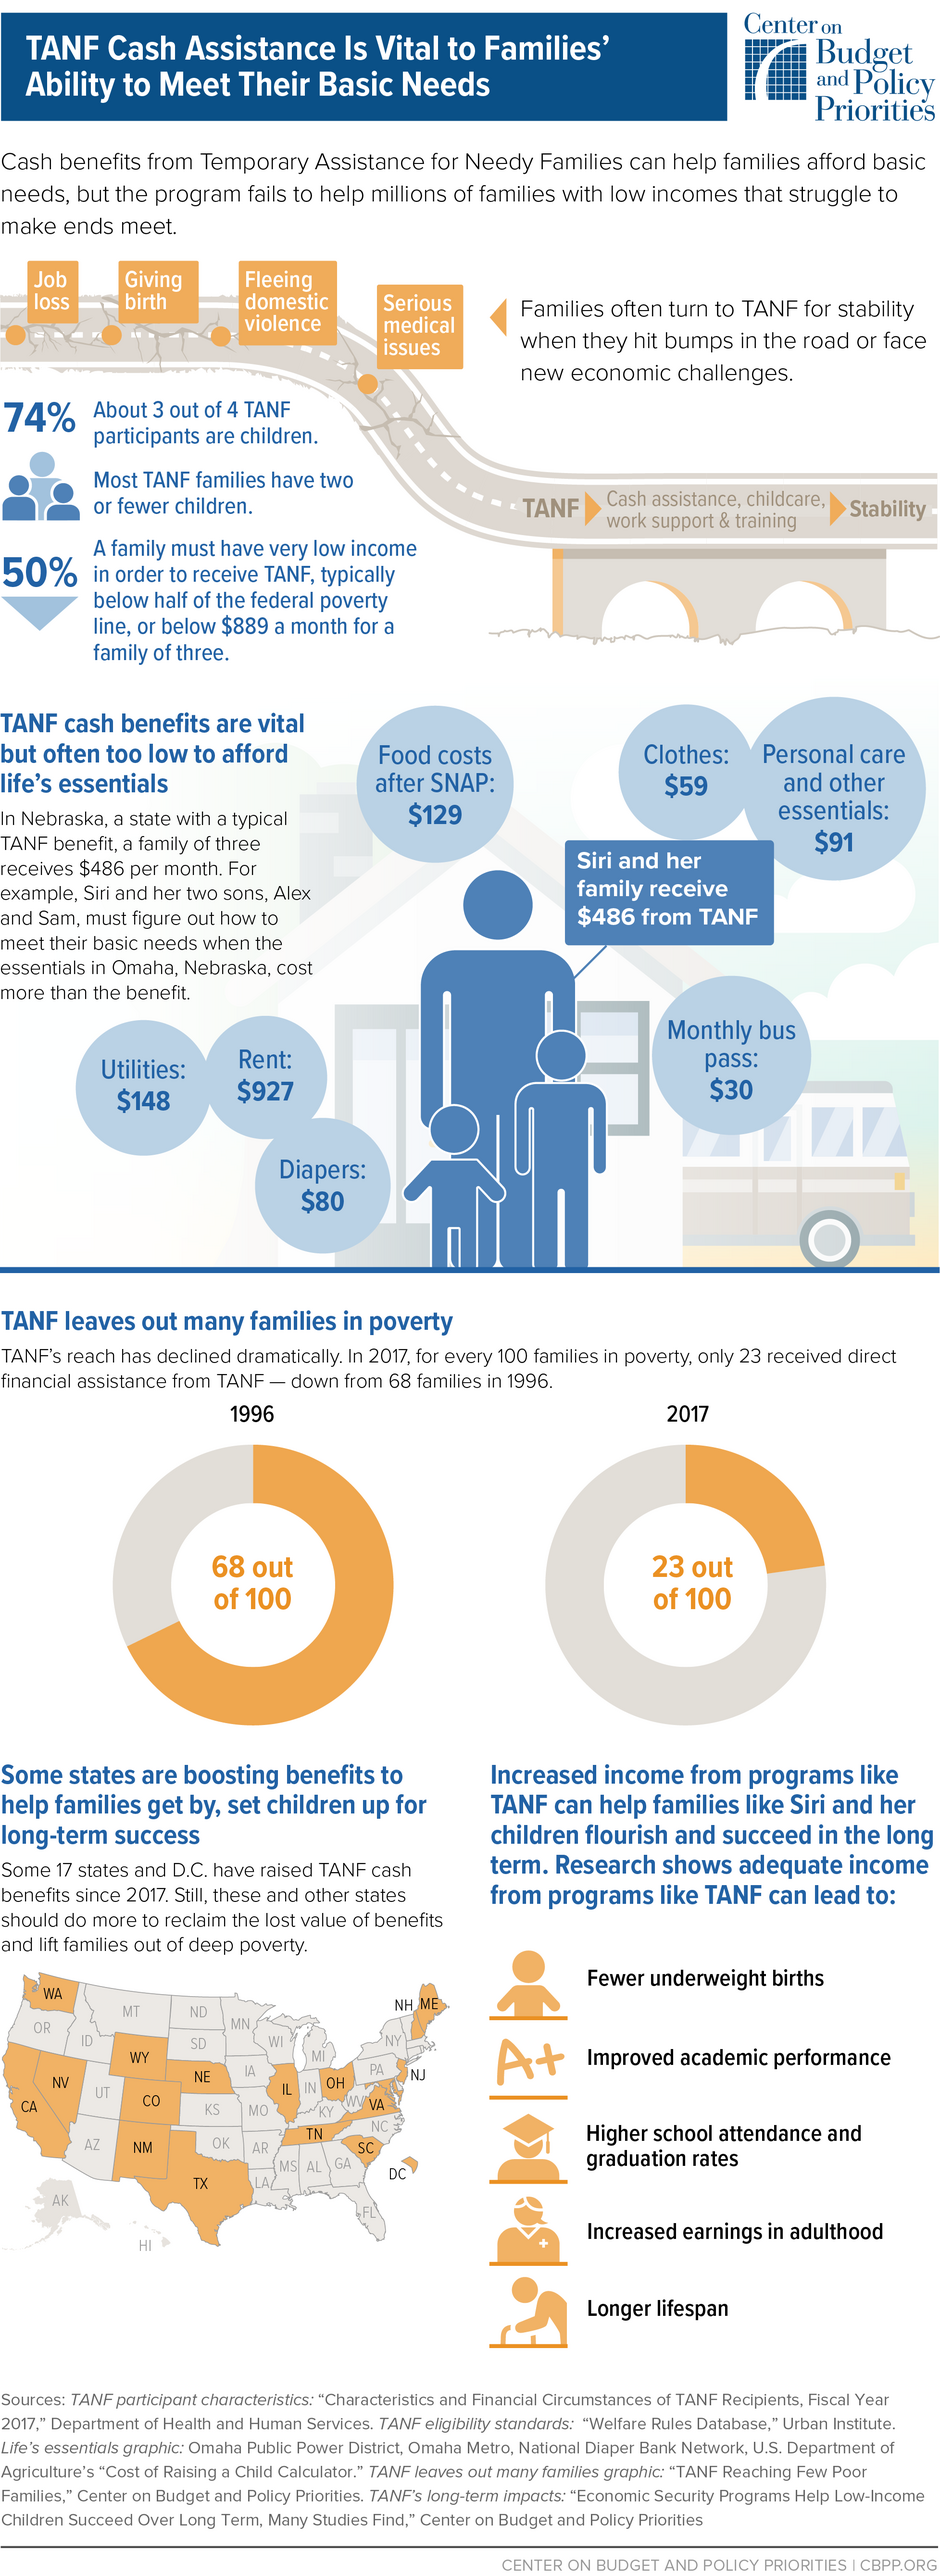 Infographic: TANF Cash Assistance Is Vital to Families'Ability to Meet Their Basic Needs